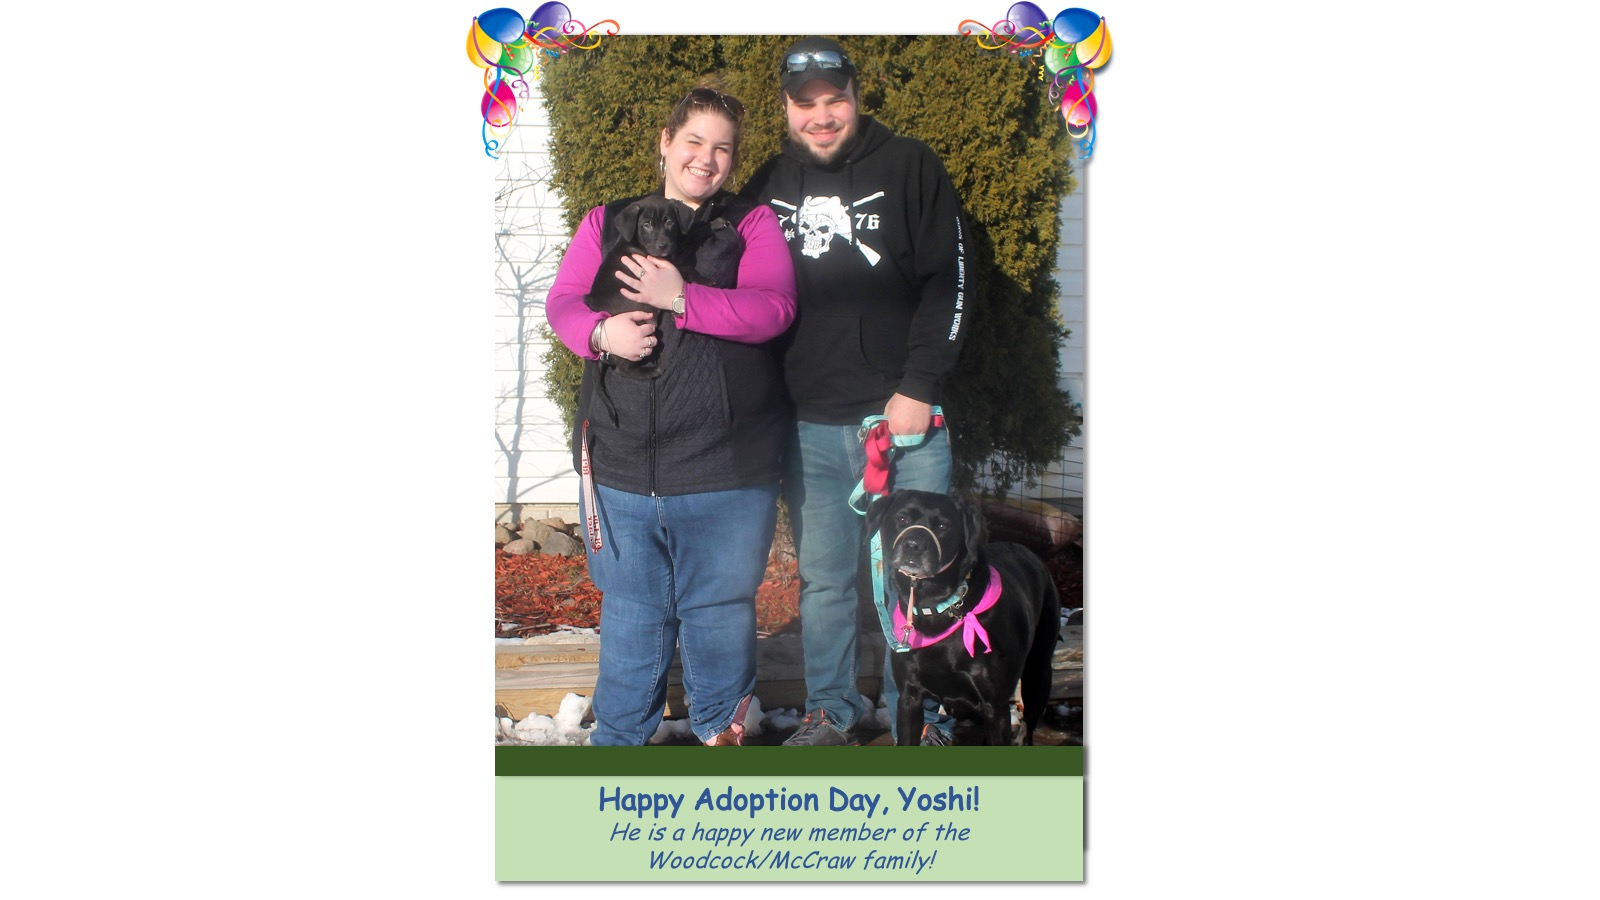 Yoshi_Adoption_Photo_2018.jpg